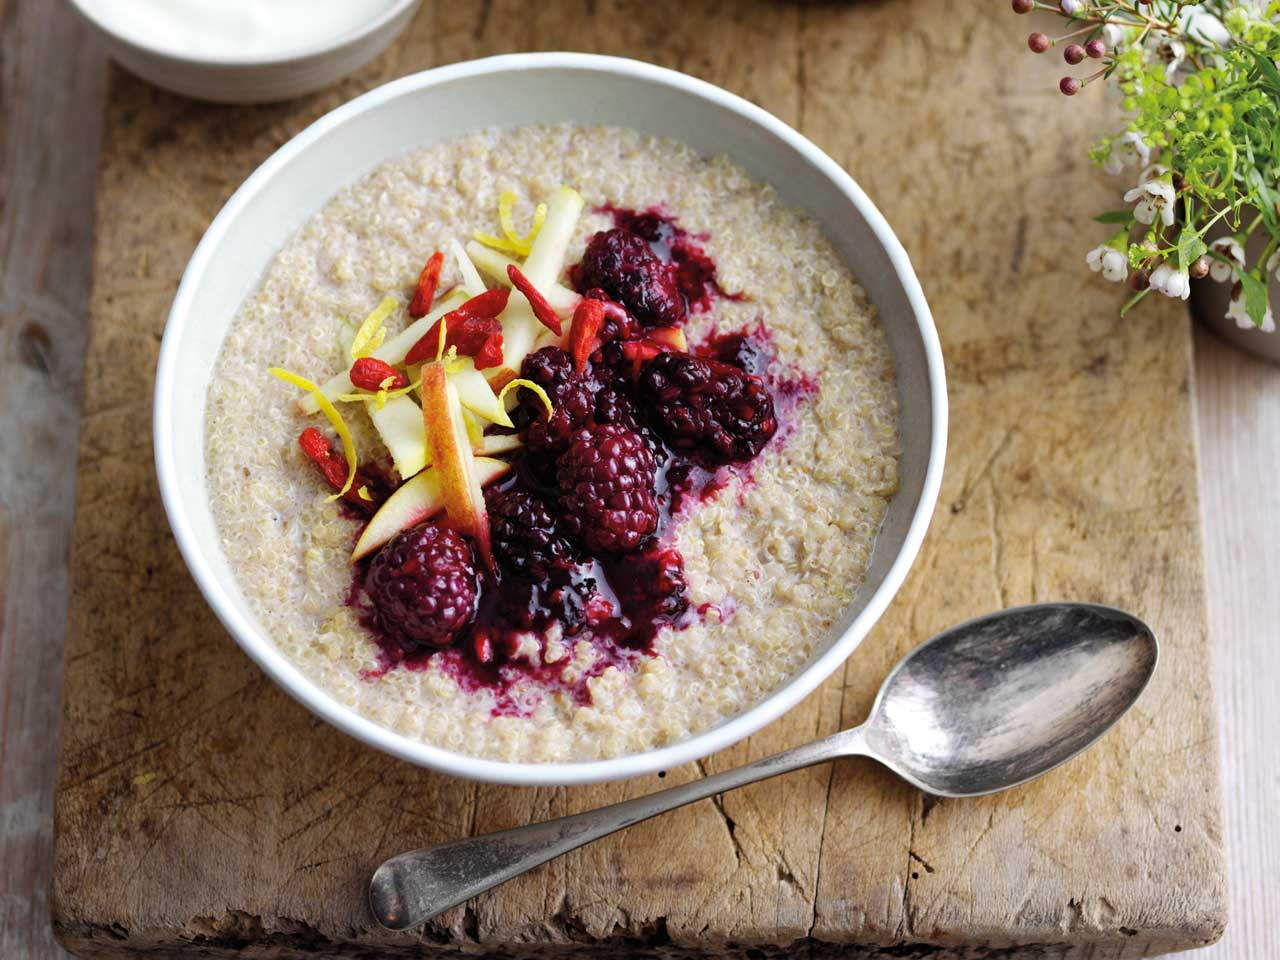 Blackberry compote with quinoa porridge